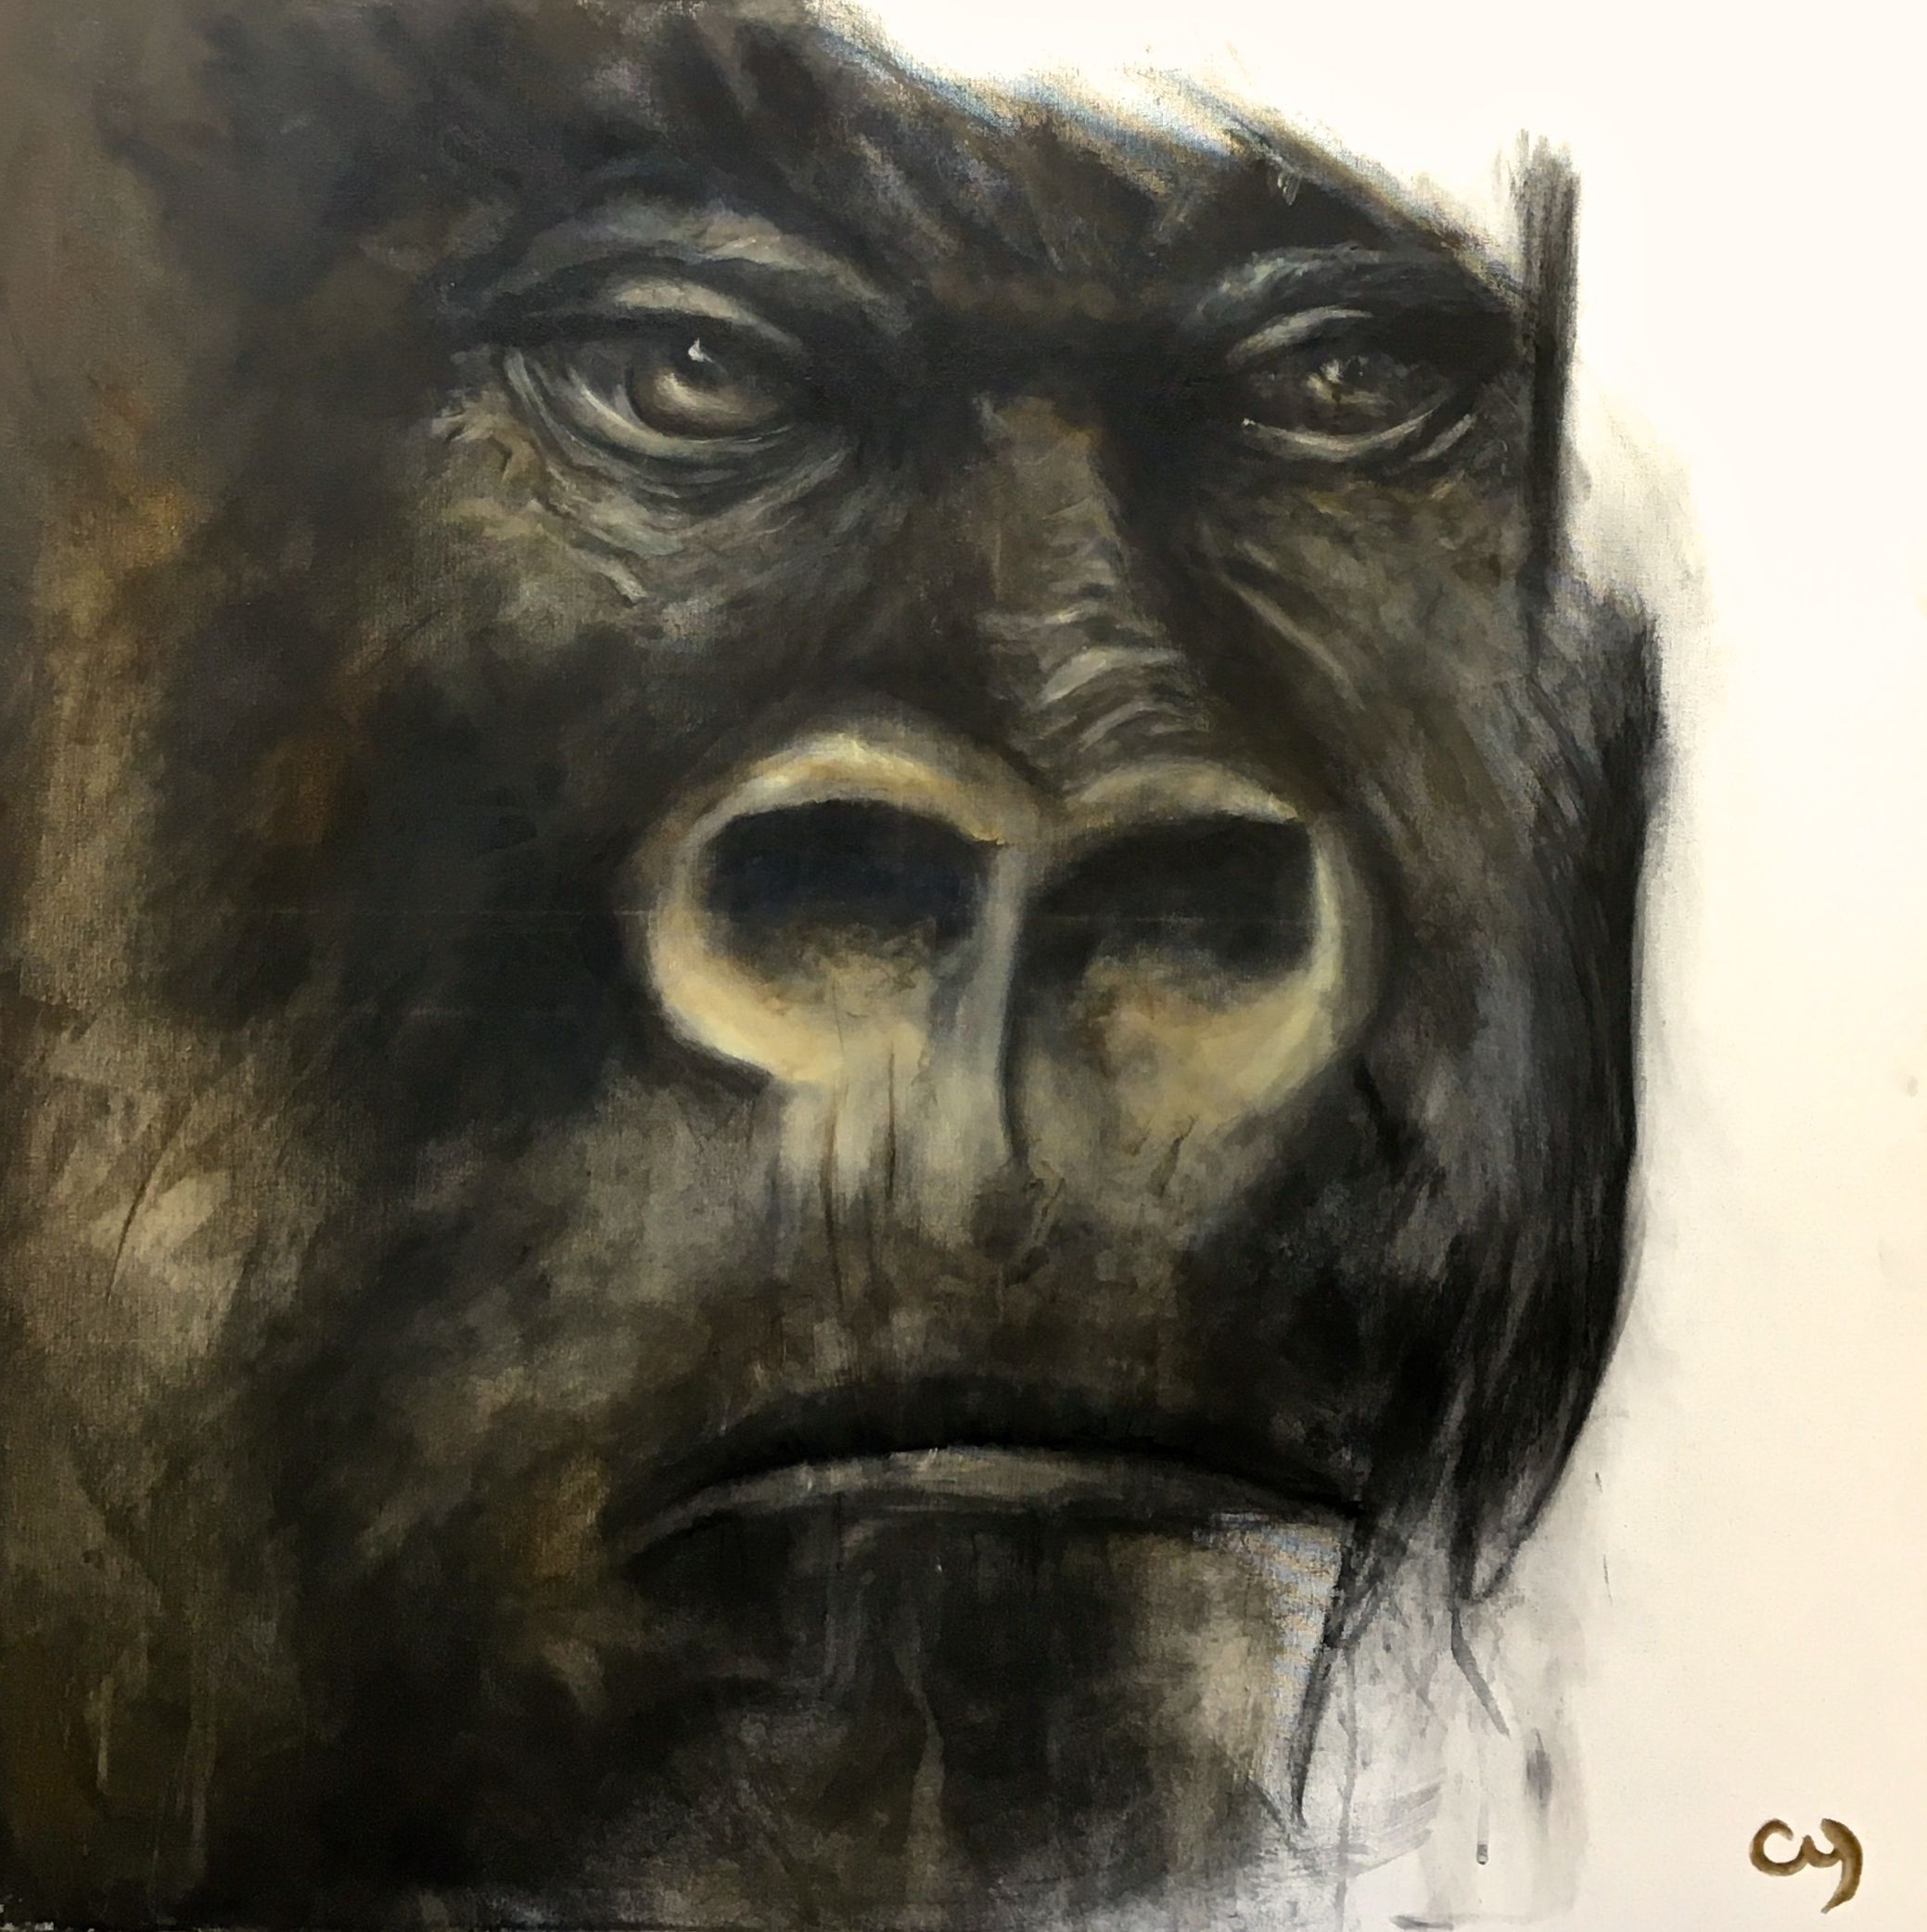 Bonobo par christyne proulx 2017 mixte sur canevas 36x36pcs figurative and contemporary art - Tableau art contemporain ...